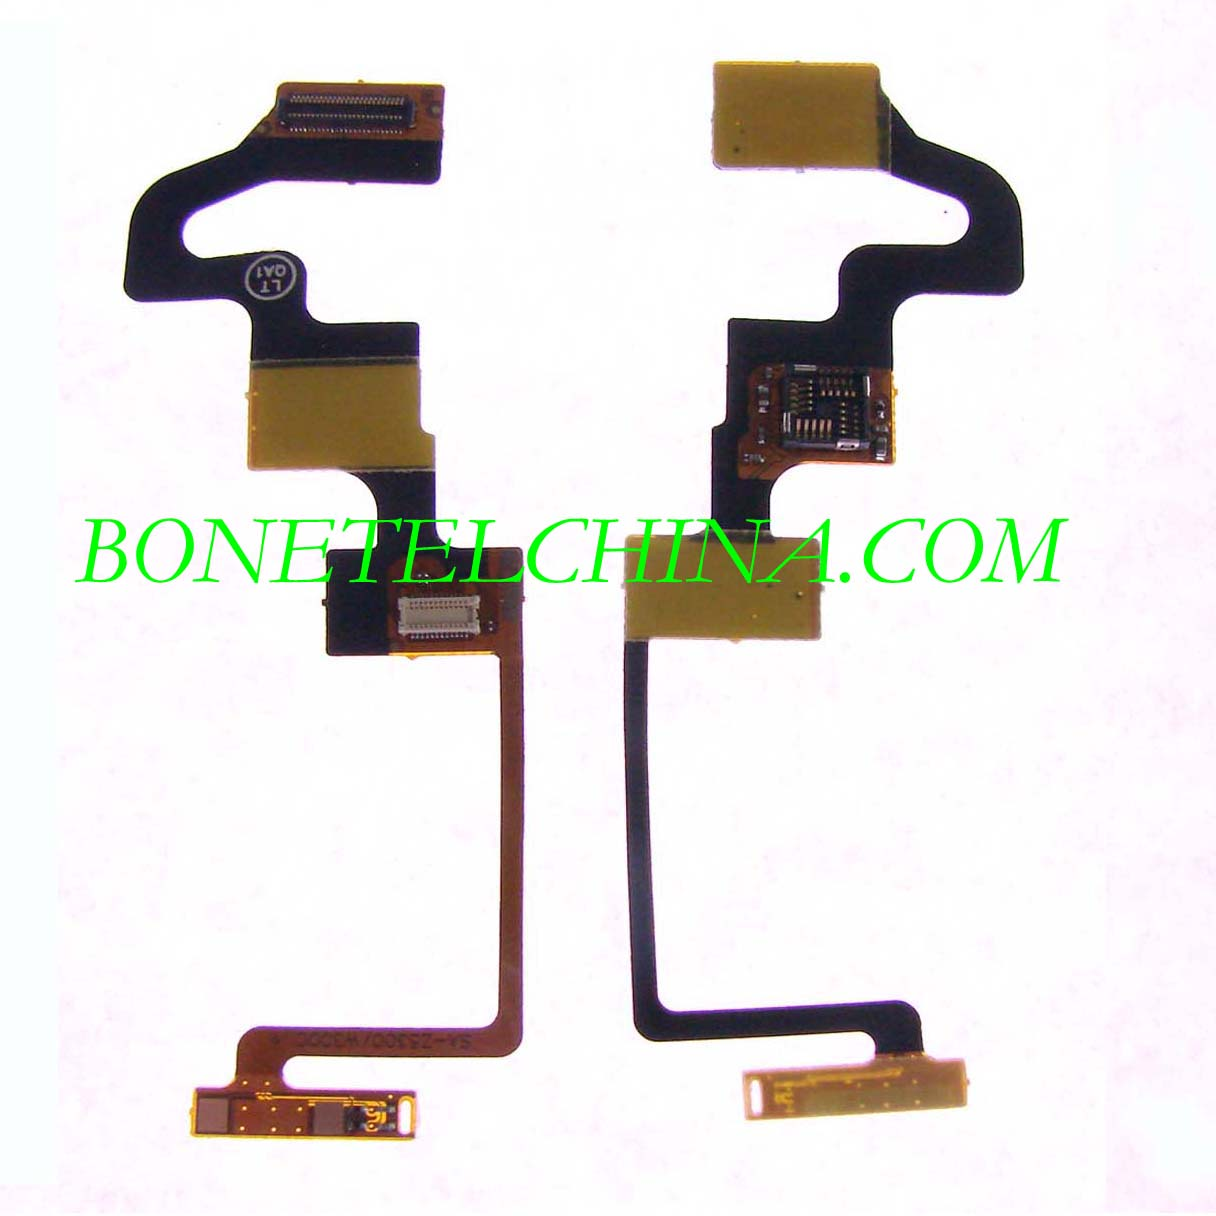 Z530 / W300 Mobile phone Flex Cables for Sony Ericsson